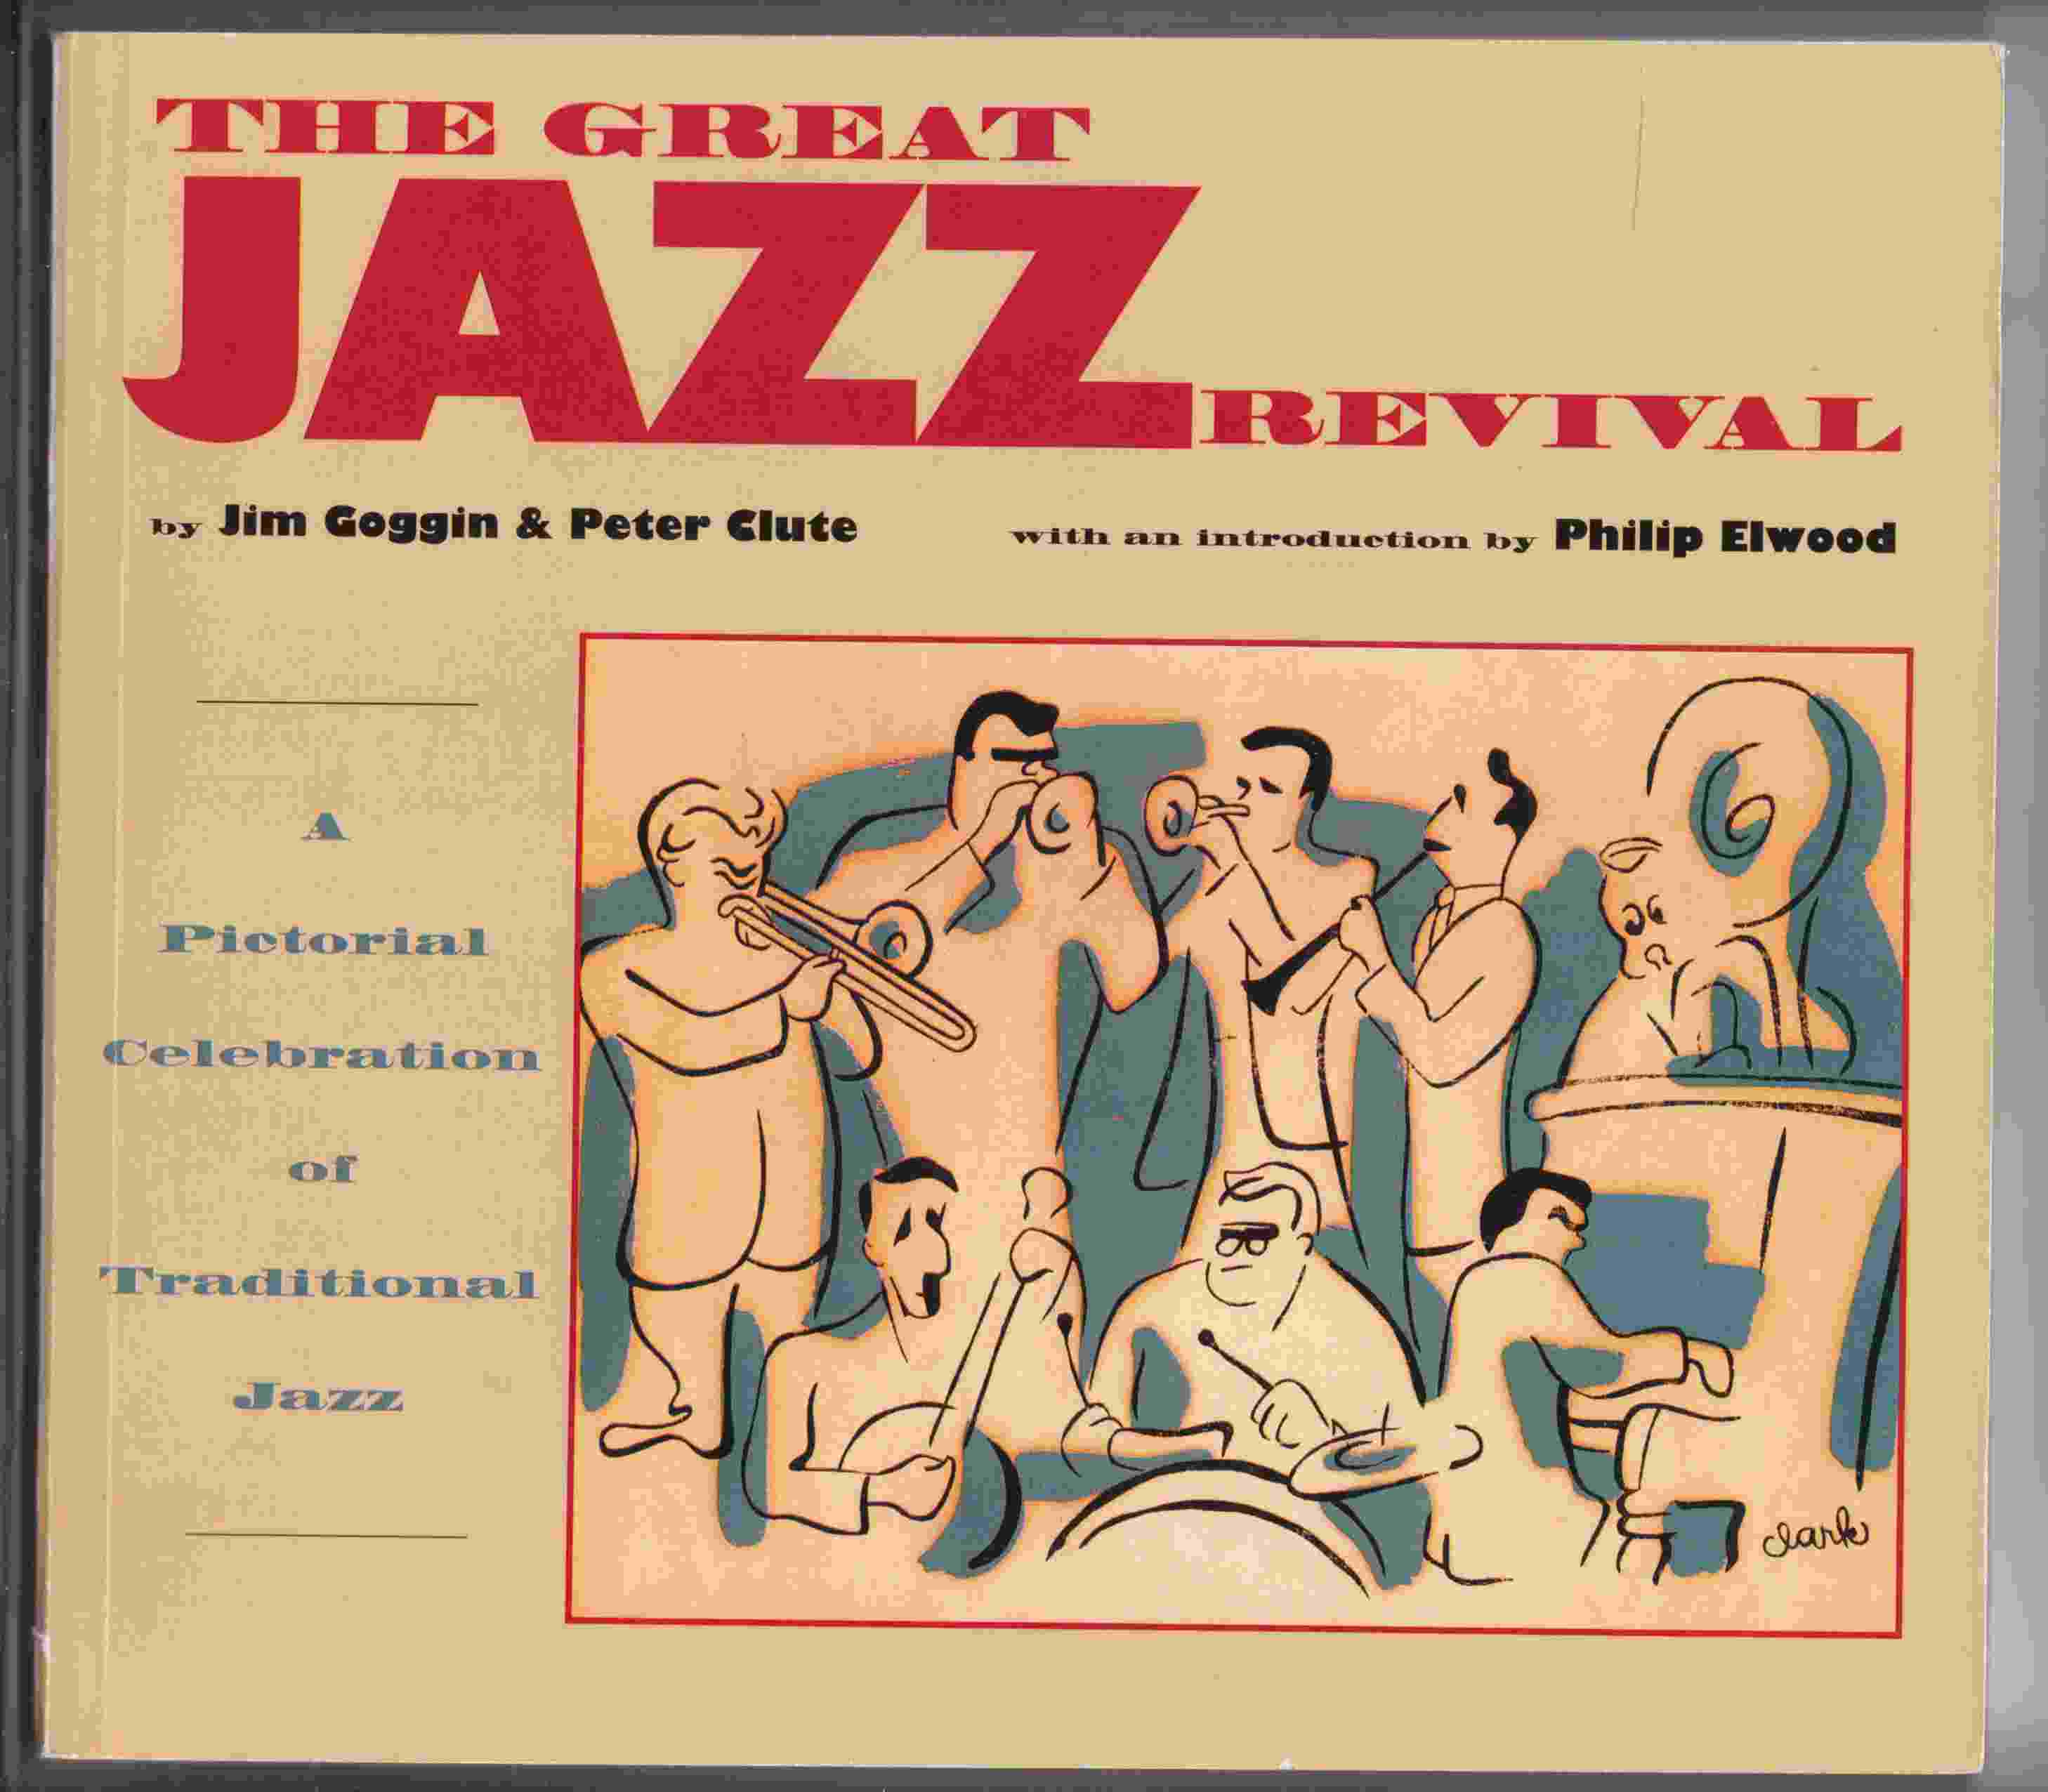 Image for The Great Jazz Revival A Pictorial Celebration of Traditional Jazz